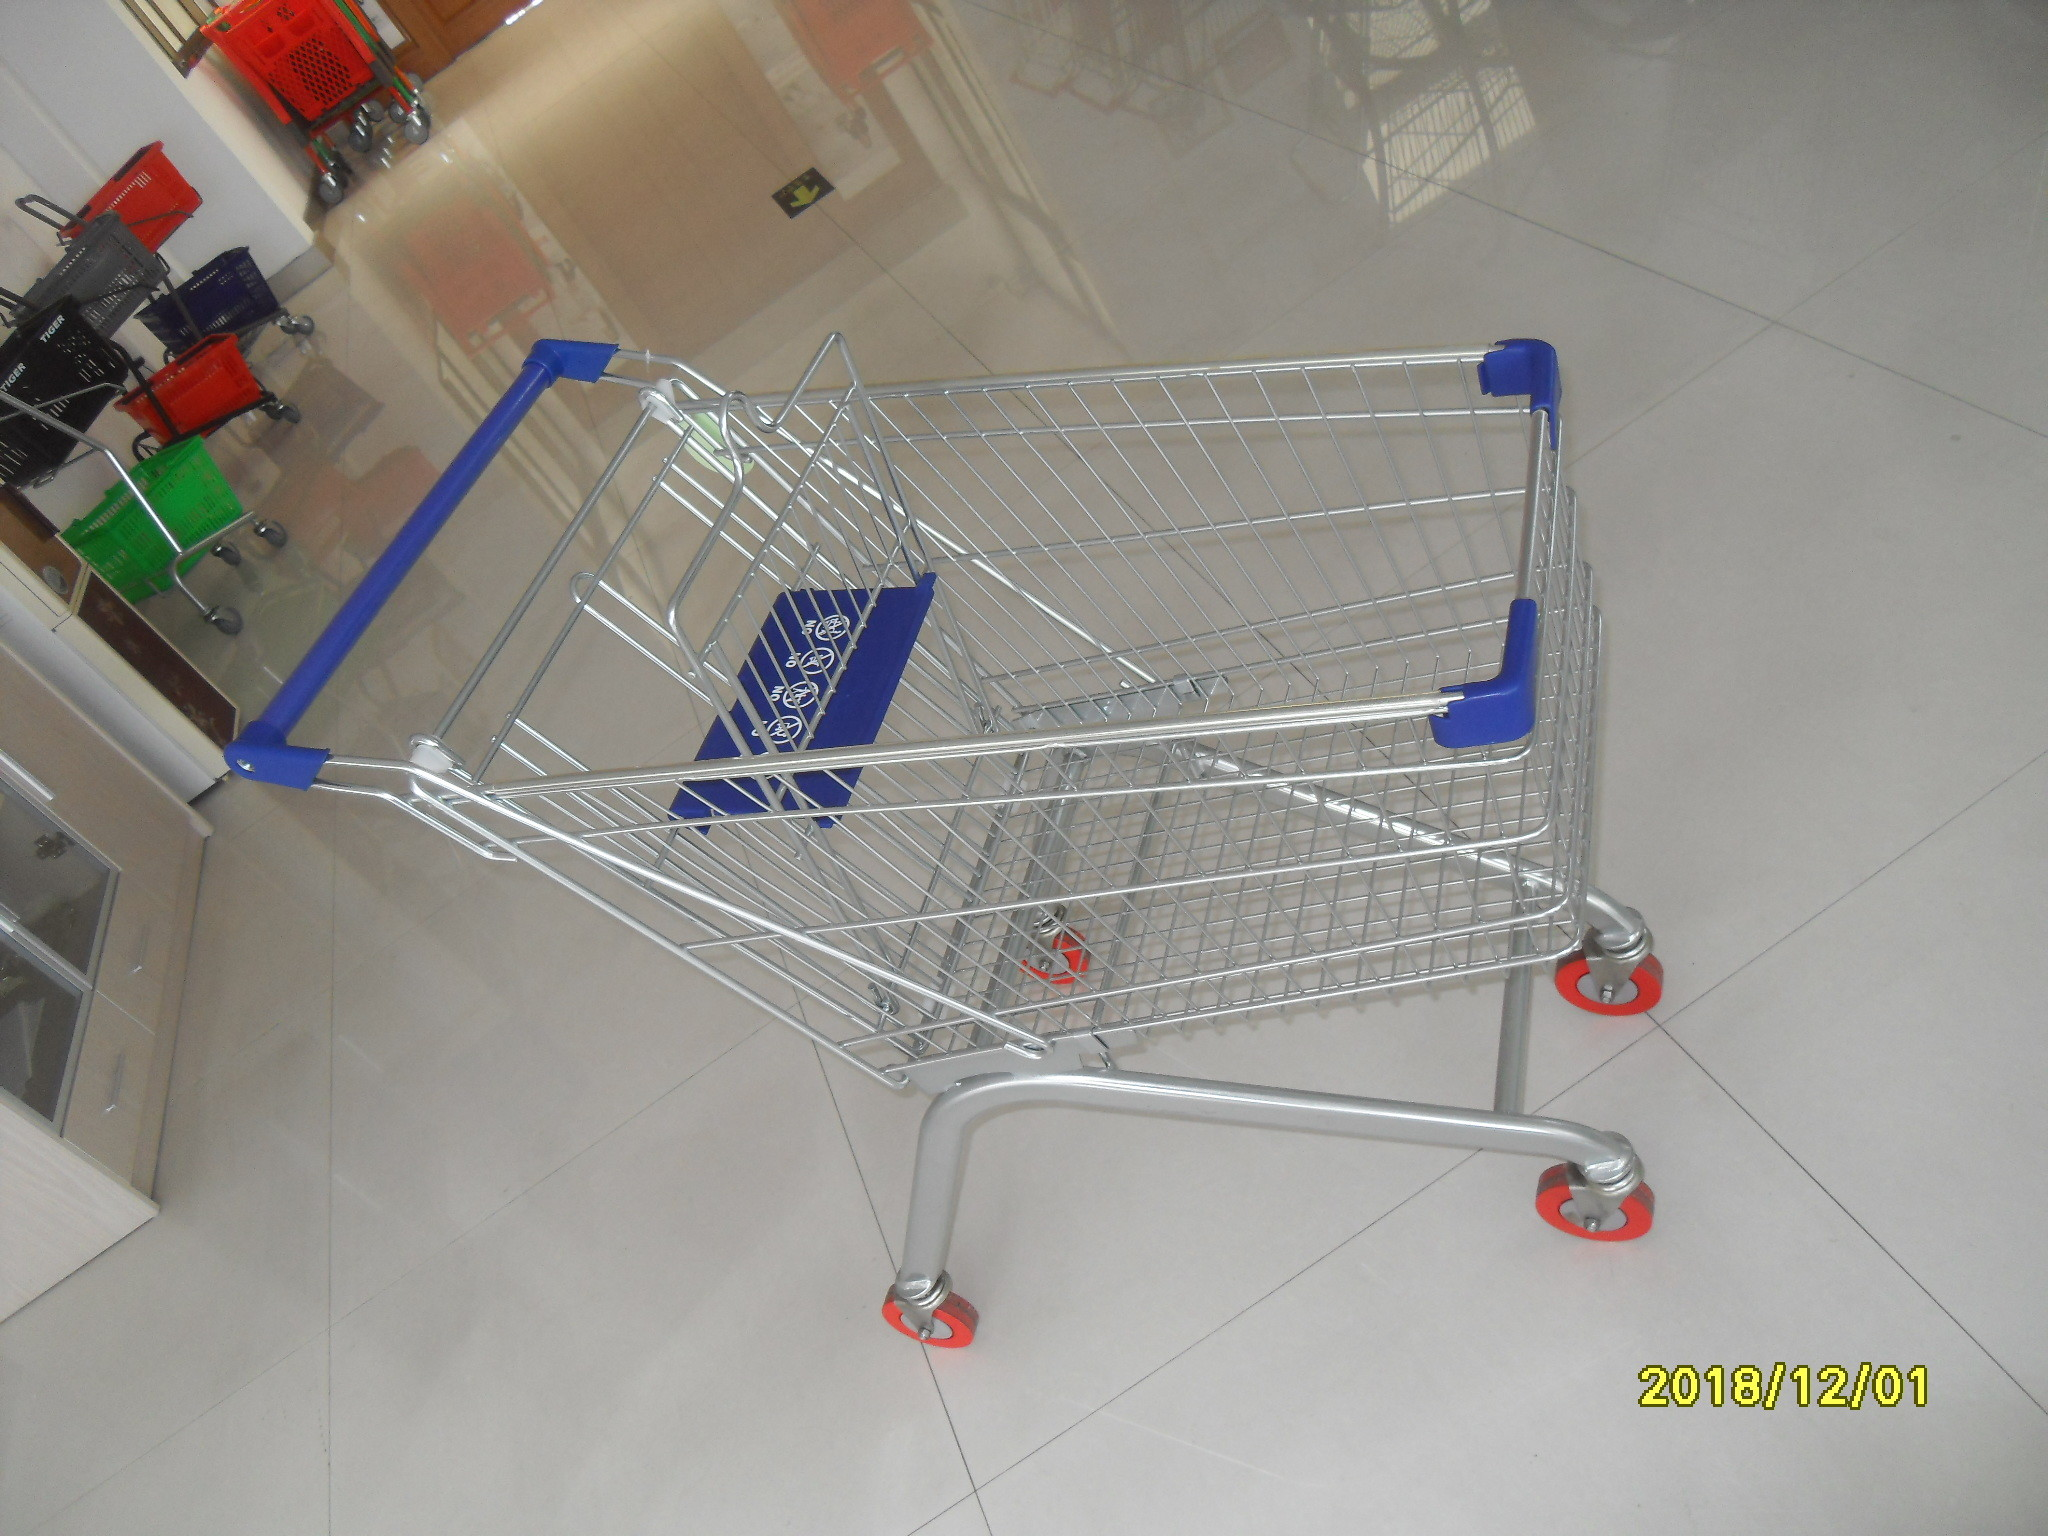 Europe Style 100L Supermarket Shopping Carts Grocery With Blue Plastic Parts